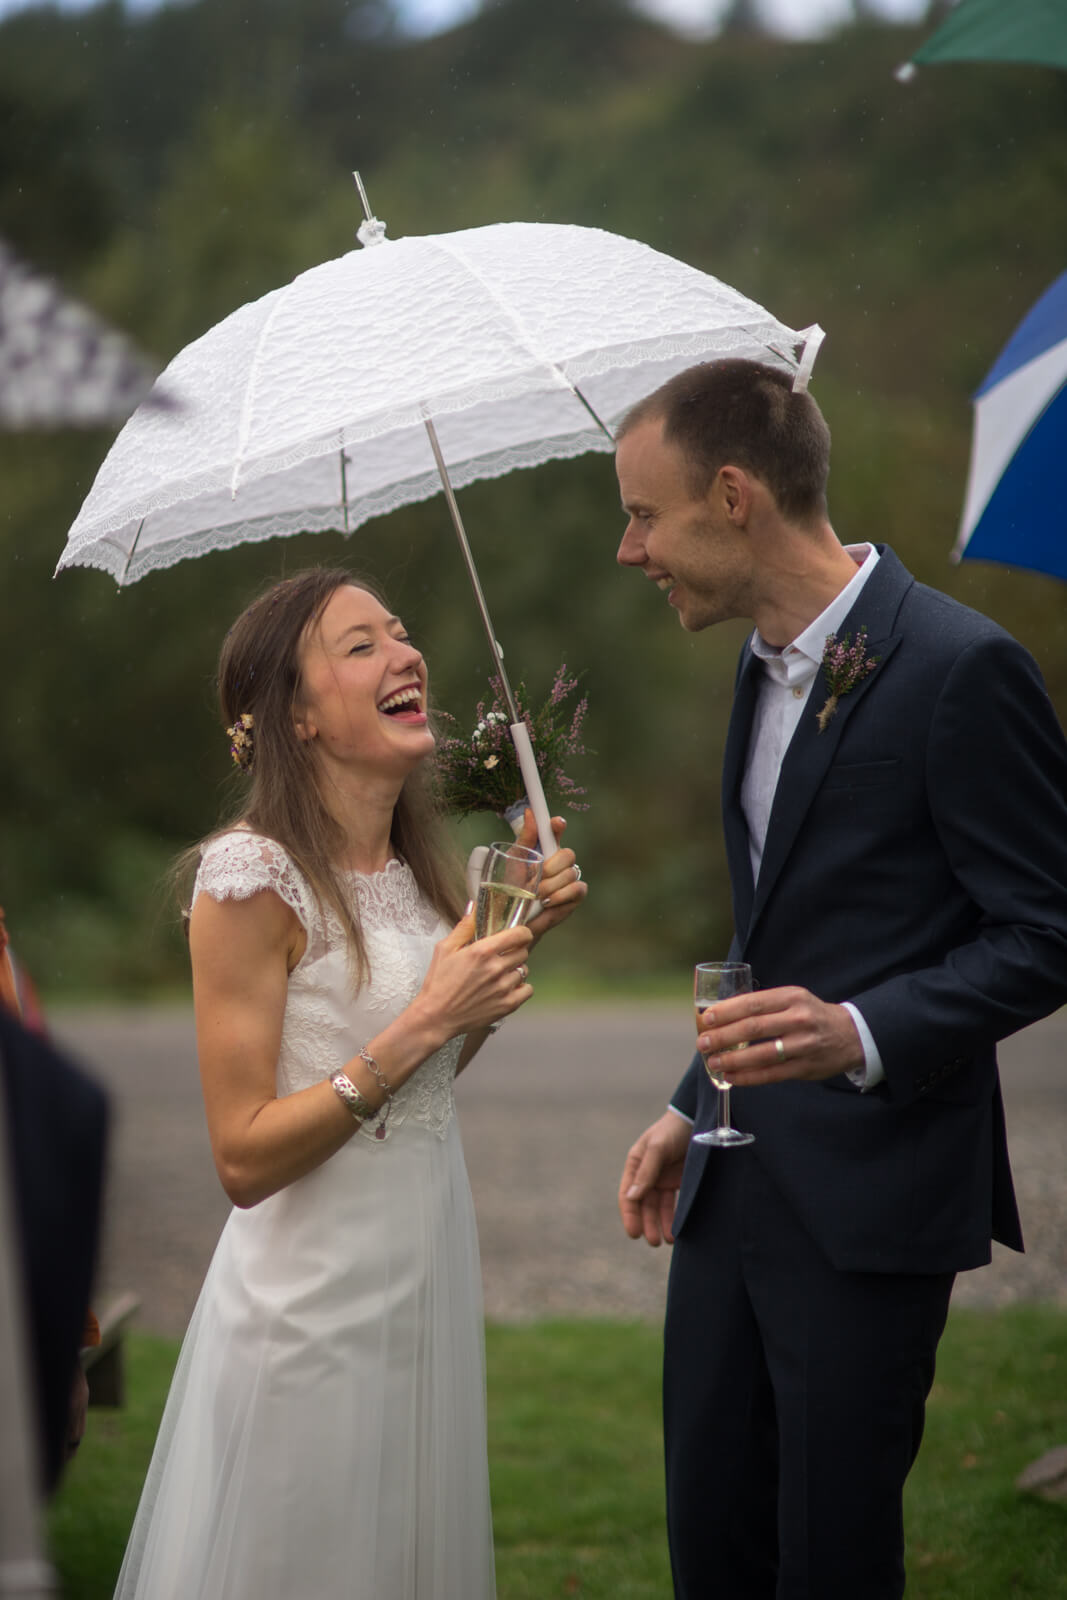 Bride and groom with champagne lauging under a white lace umbrella